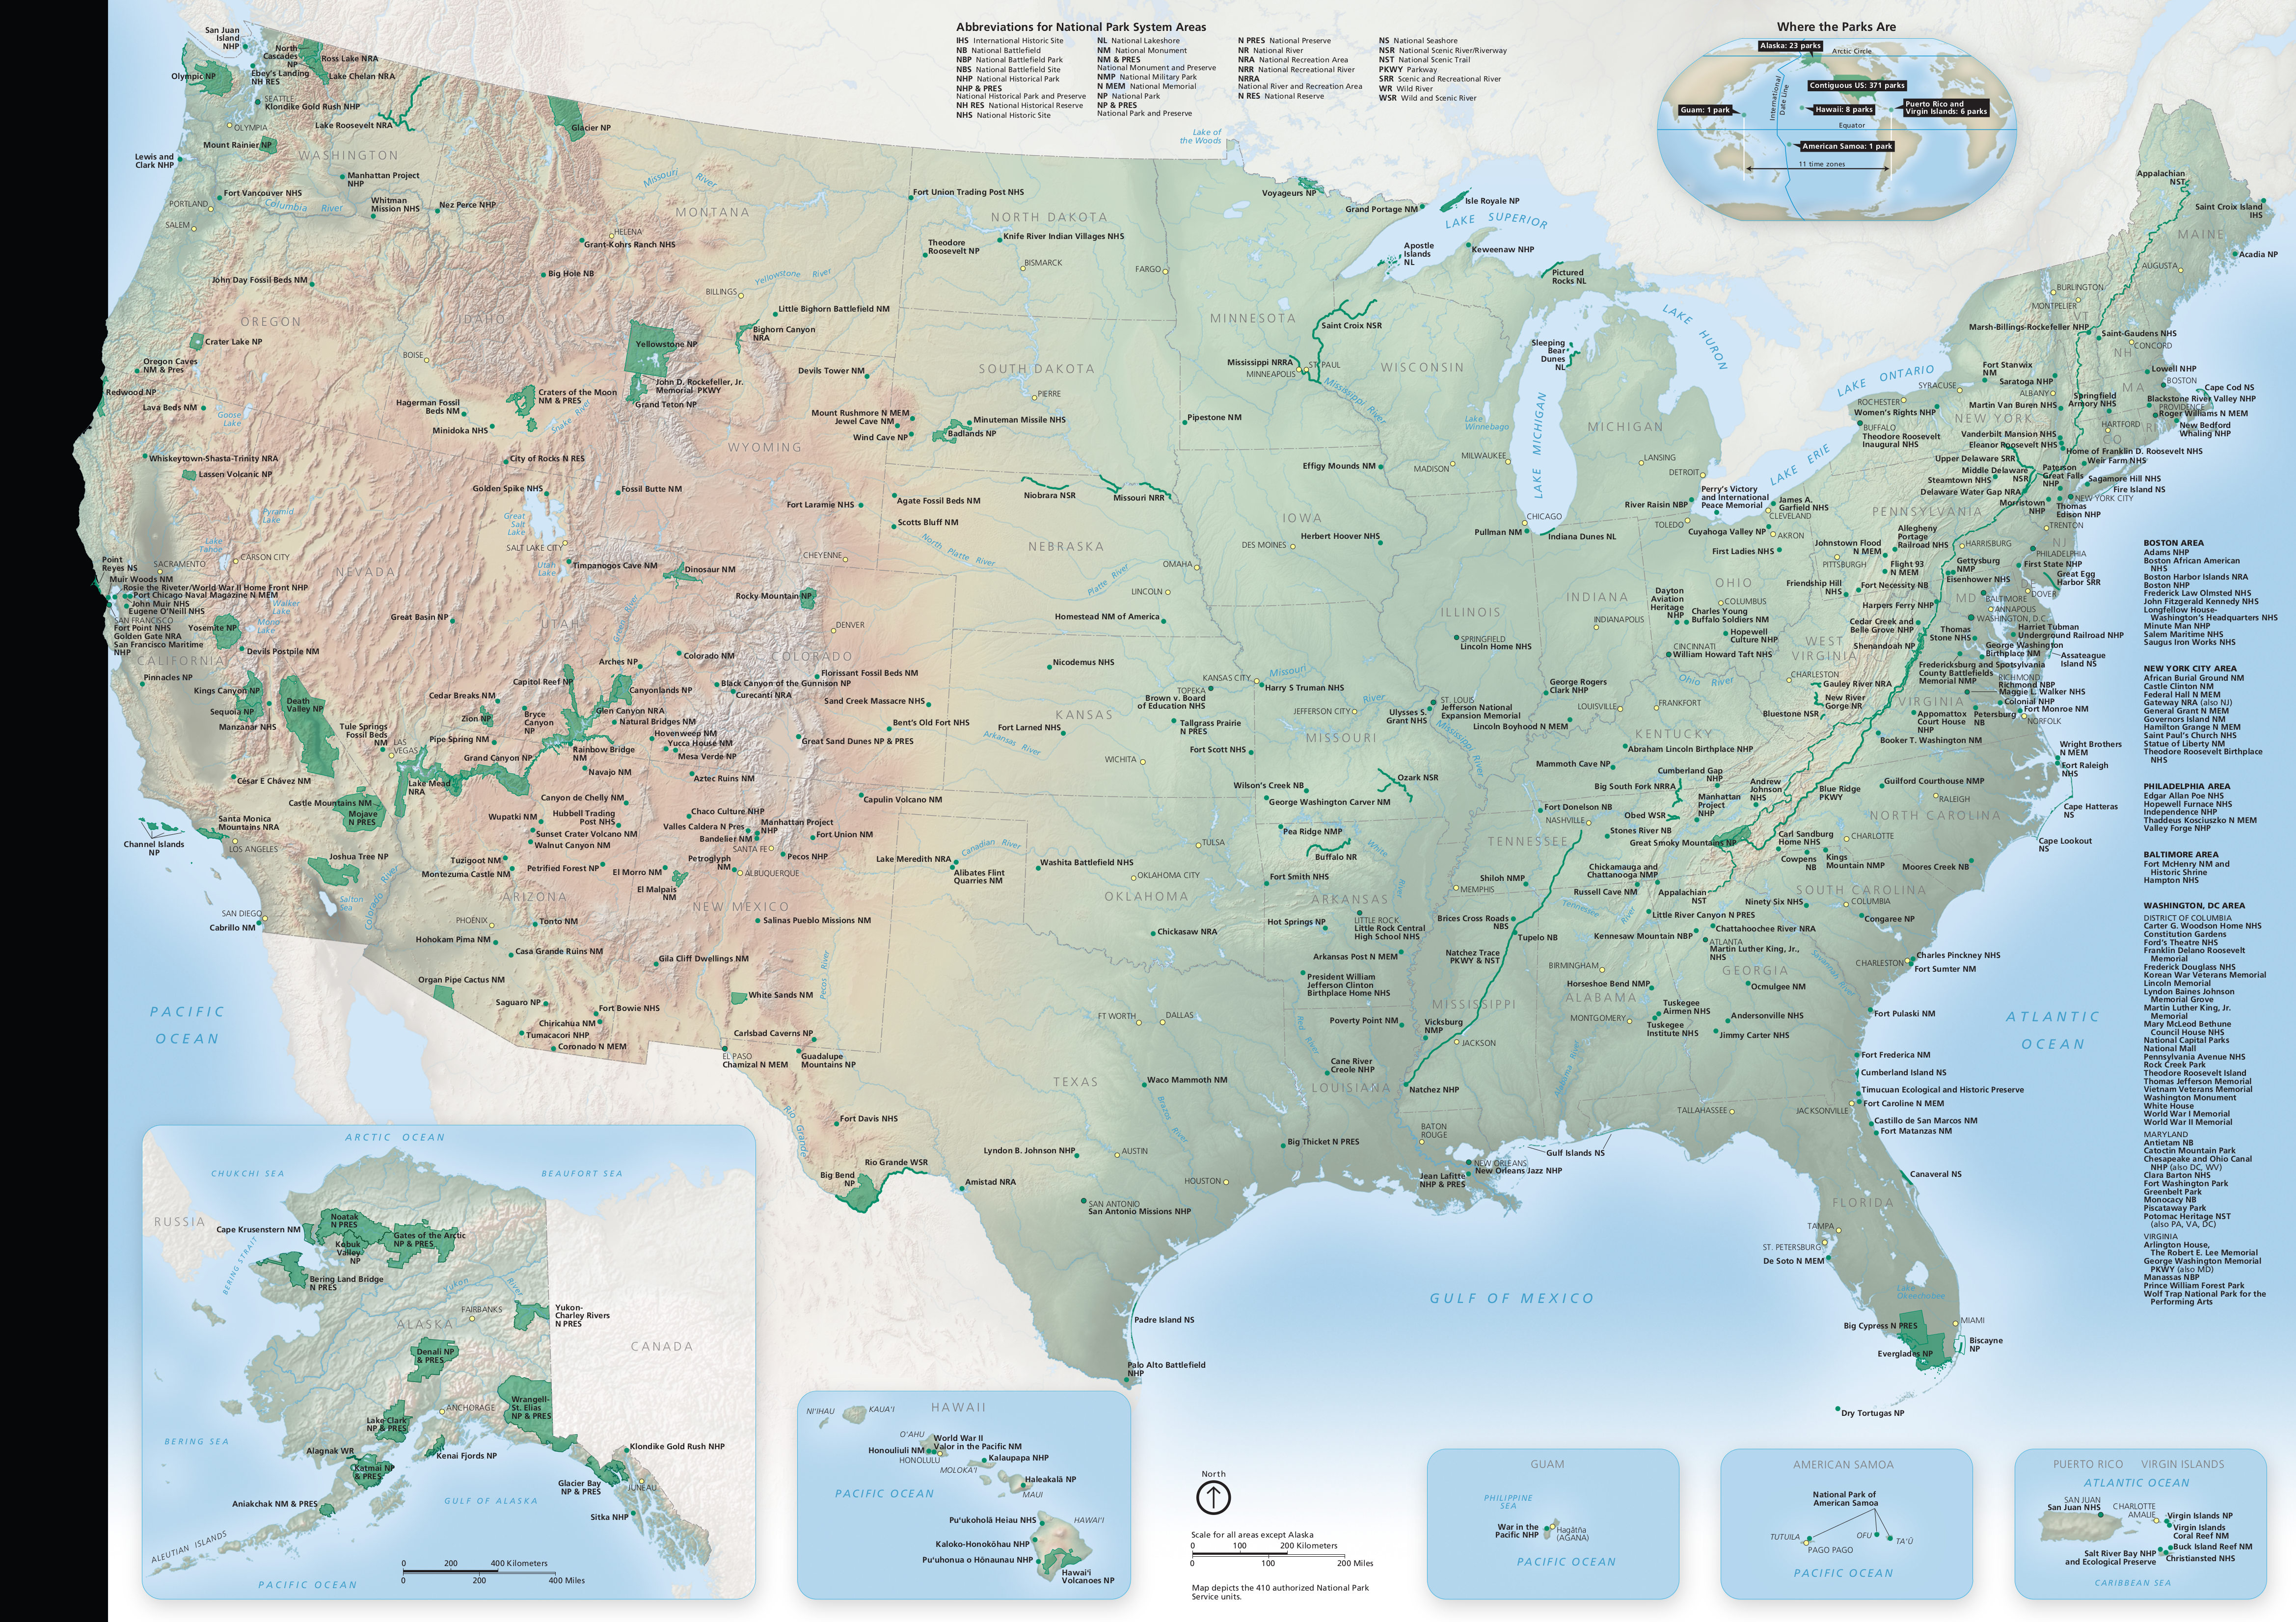 National Park Maps NPMapscom Just Free Maps Period - Us national parks interactive map